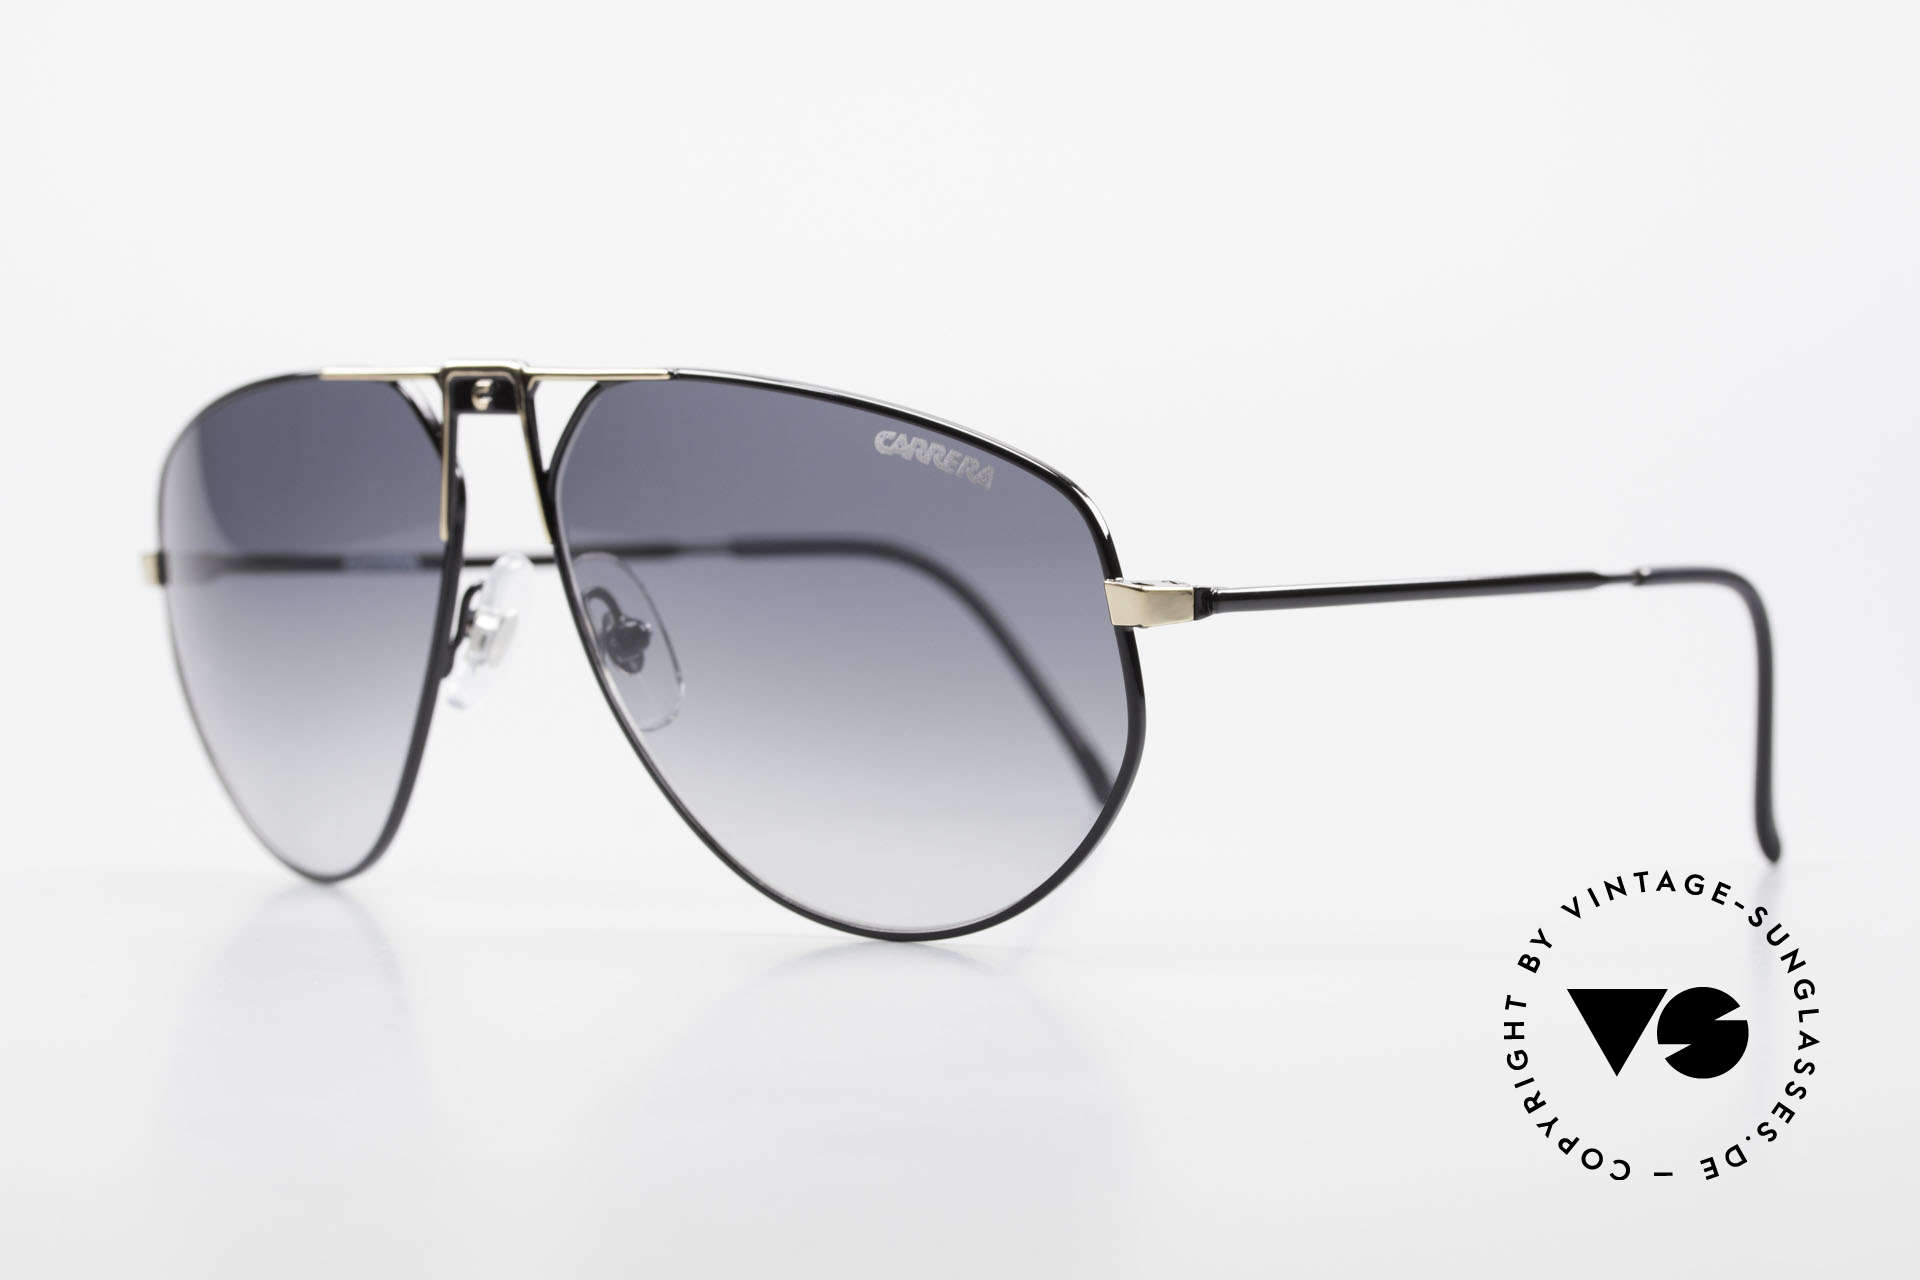 Carrera 5410 Sport Performance 90's Shades, brilliant combination of functionality & lifestyle, Made for Men